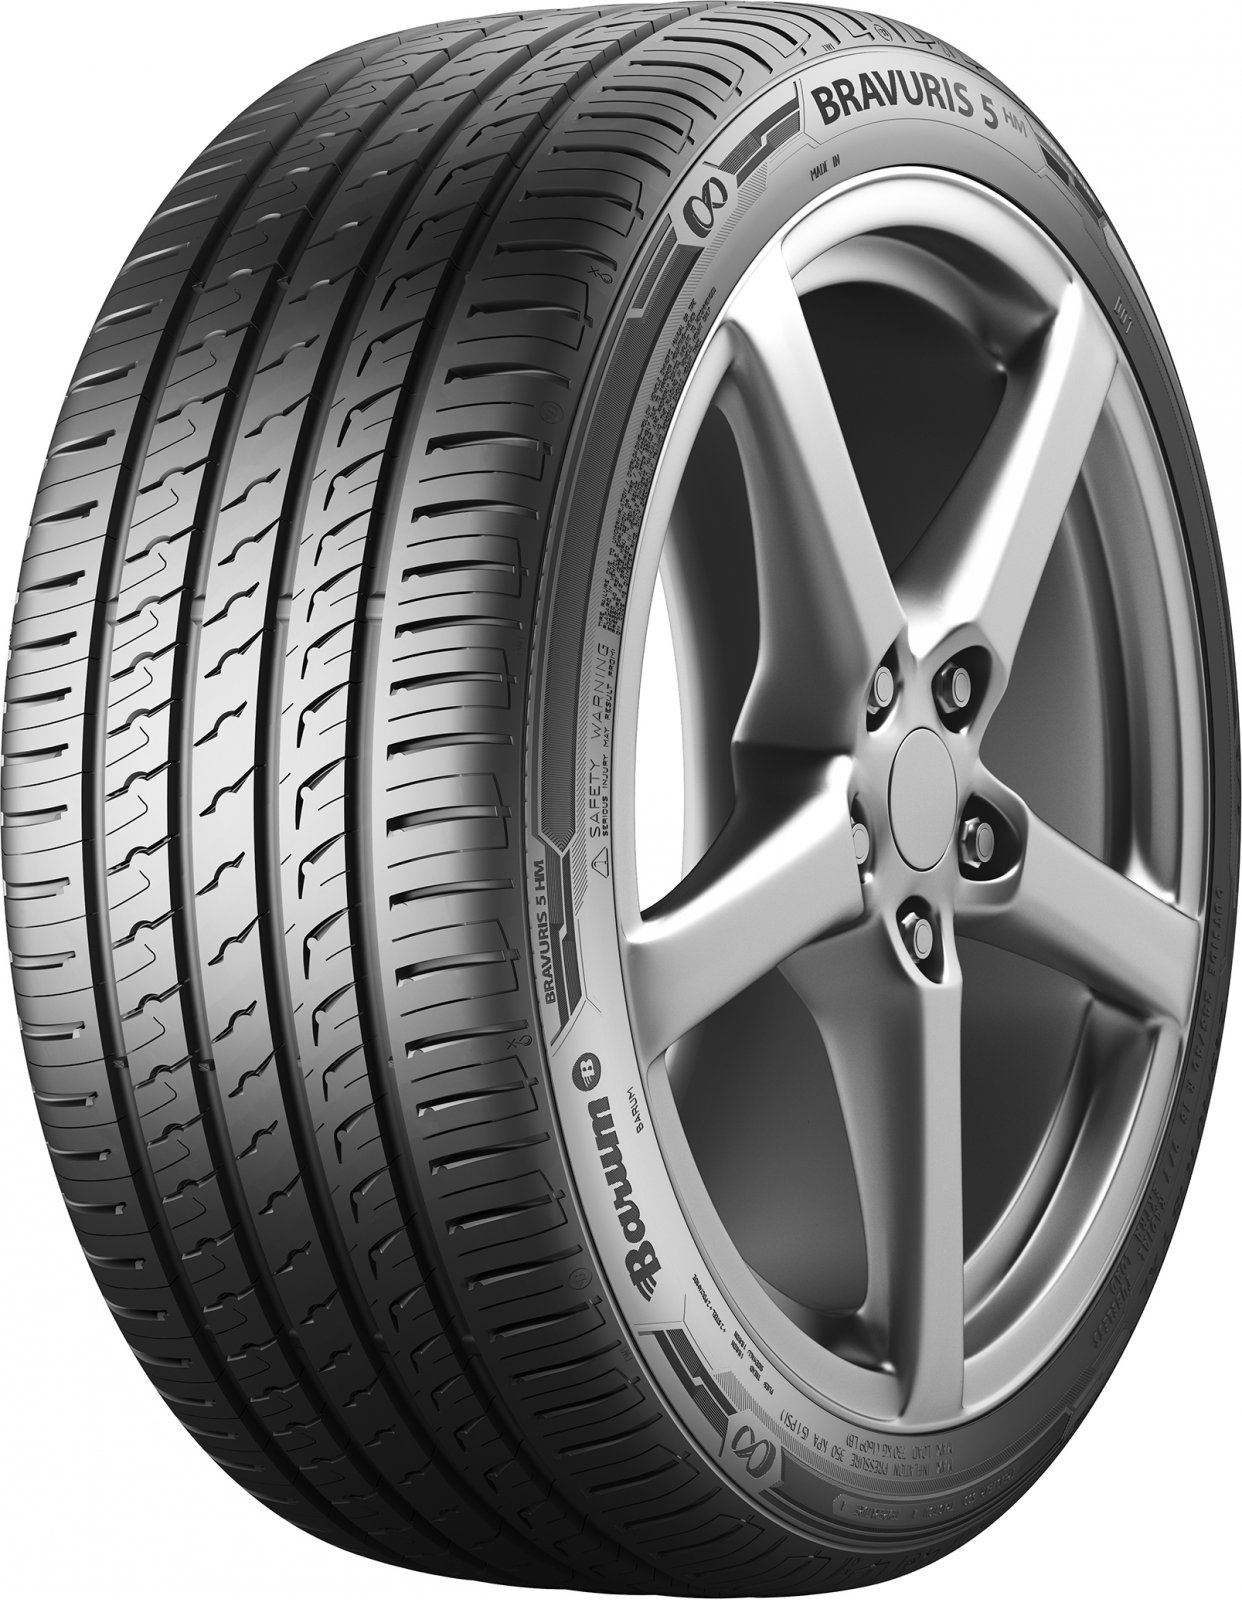 Barum Bravuris 5HM 245/40 R18 97Y XL FR